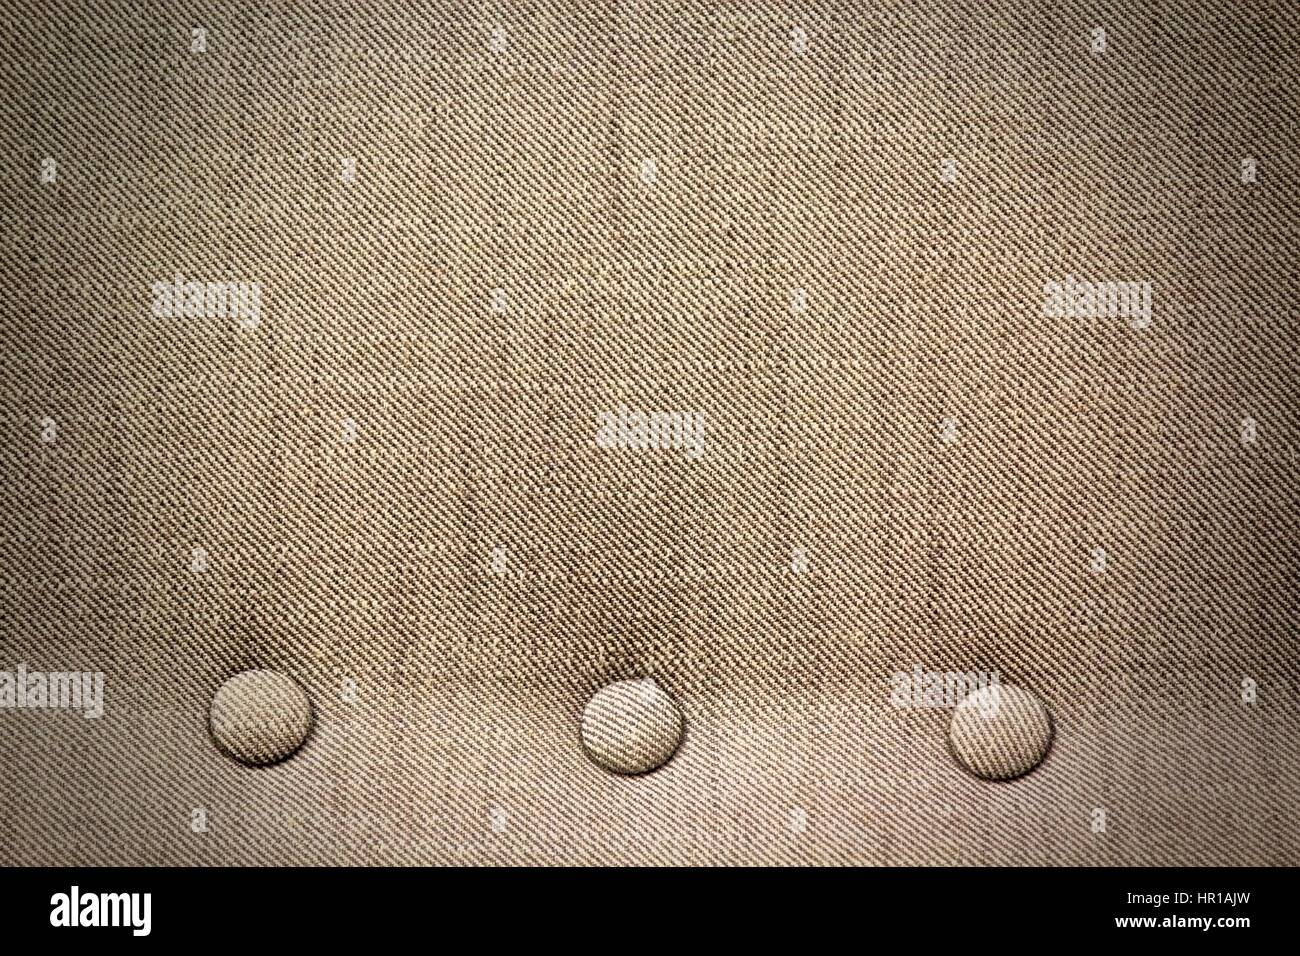 Sofa Fabric Texture Of Sofa Fabric With Button Wallpaper Stock Photo